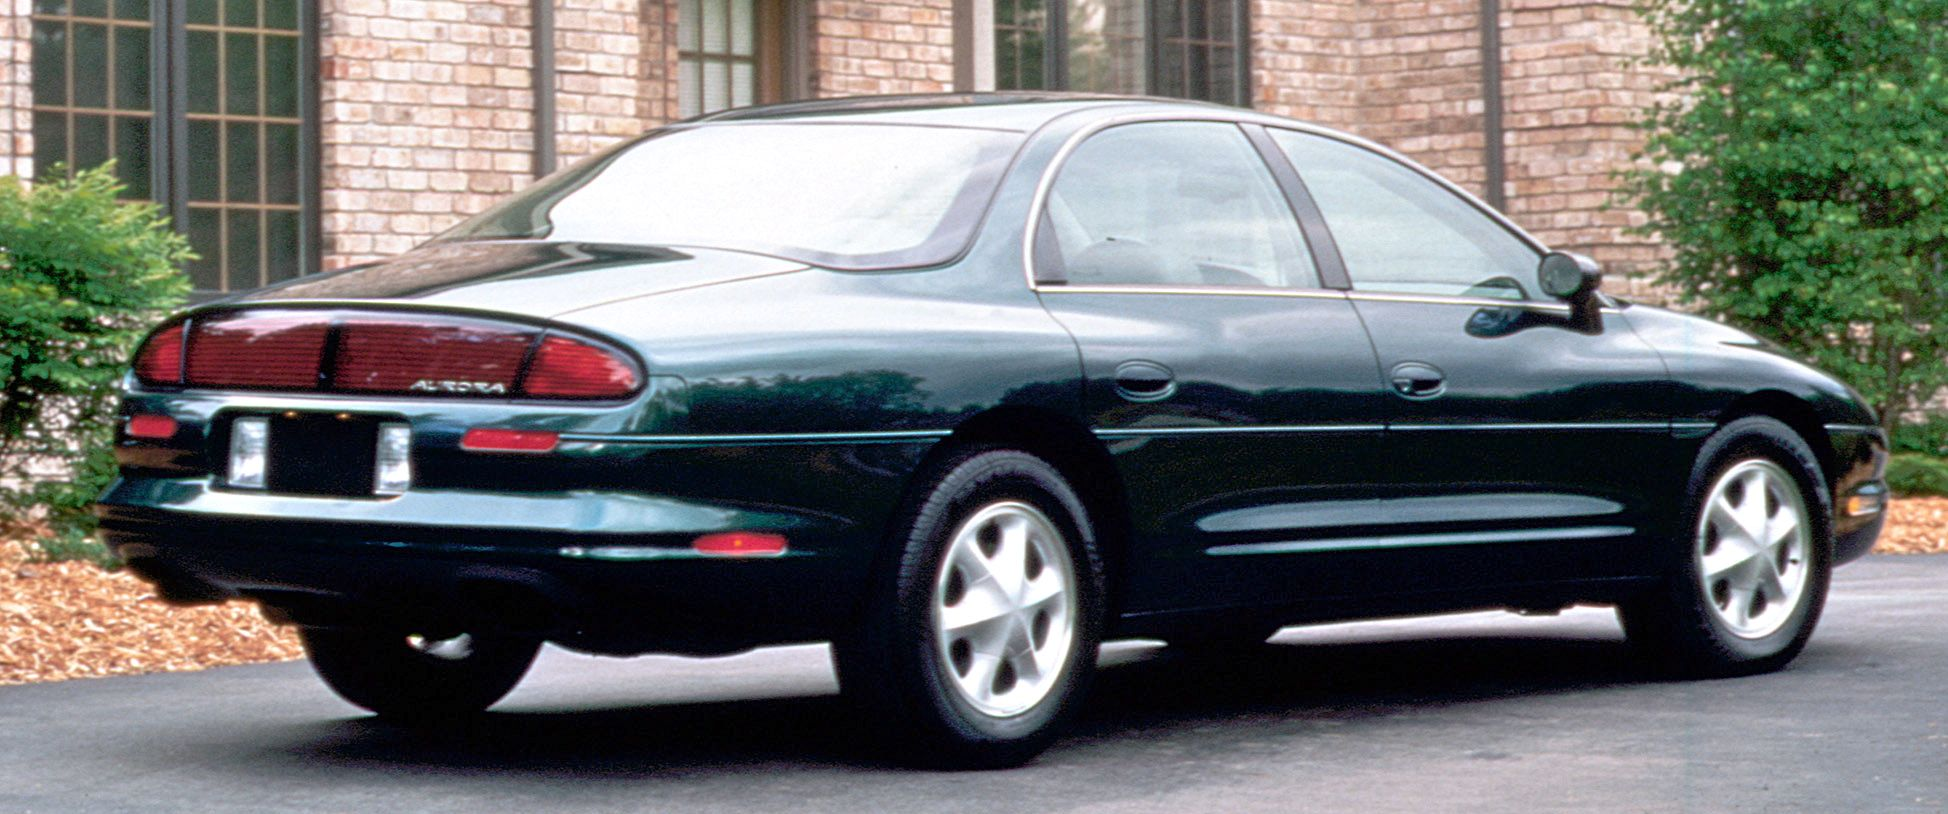 1997 Oldsmobile Aurora | Gordon\'s | Pinterest | Cars